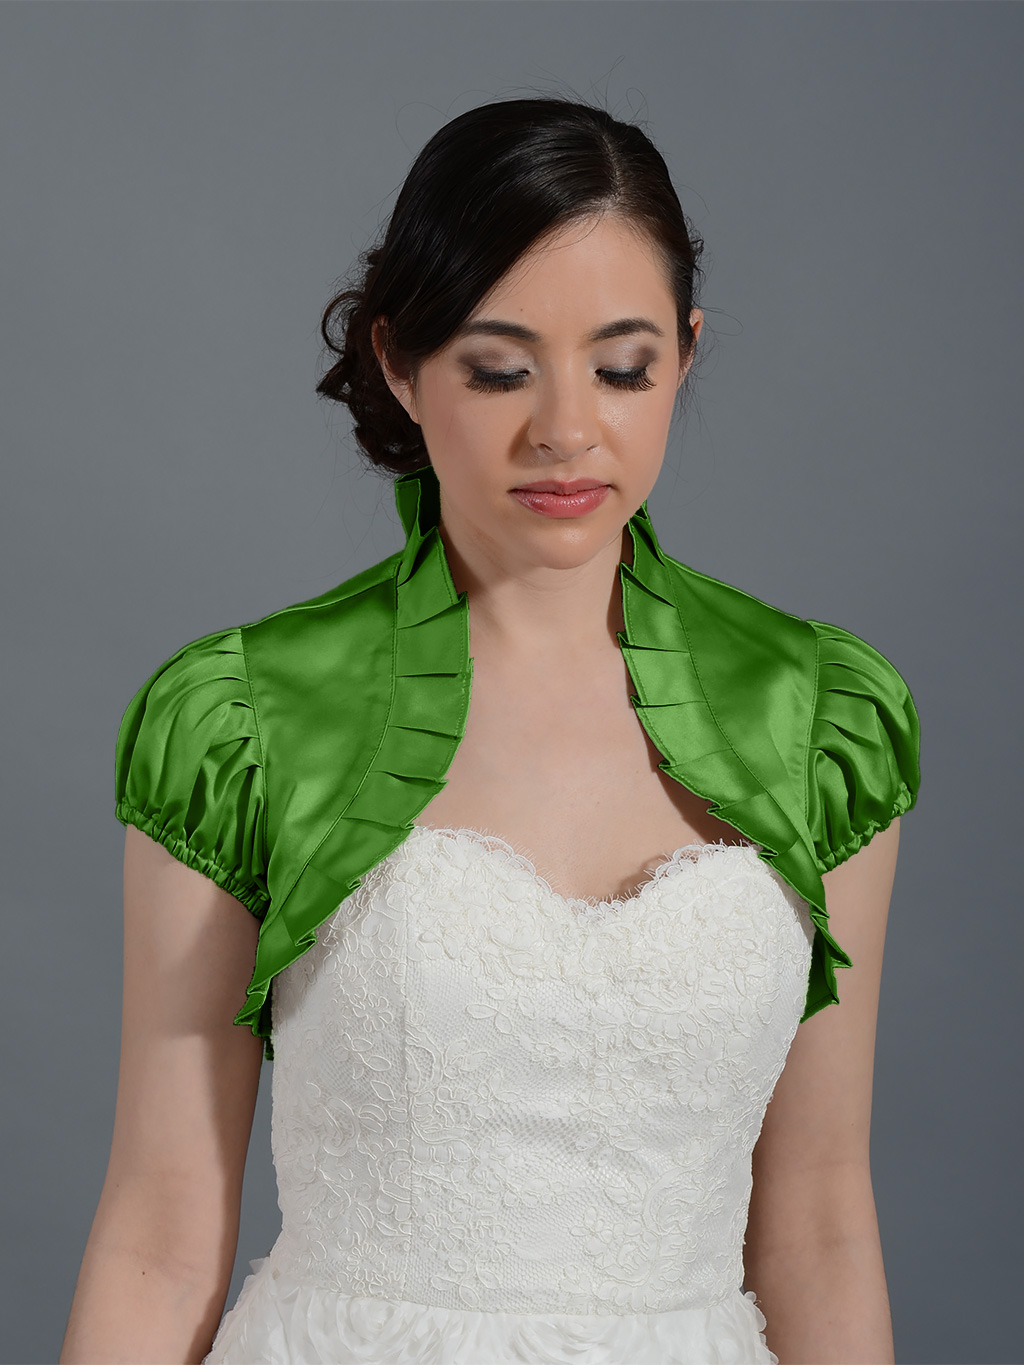 Moss Green sleeve wedding satin bolero jacket